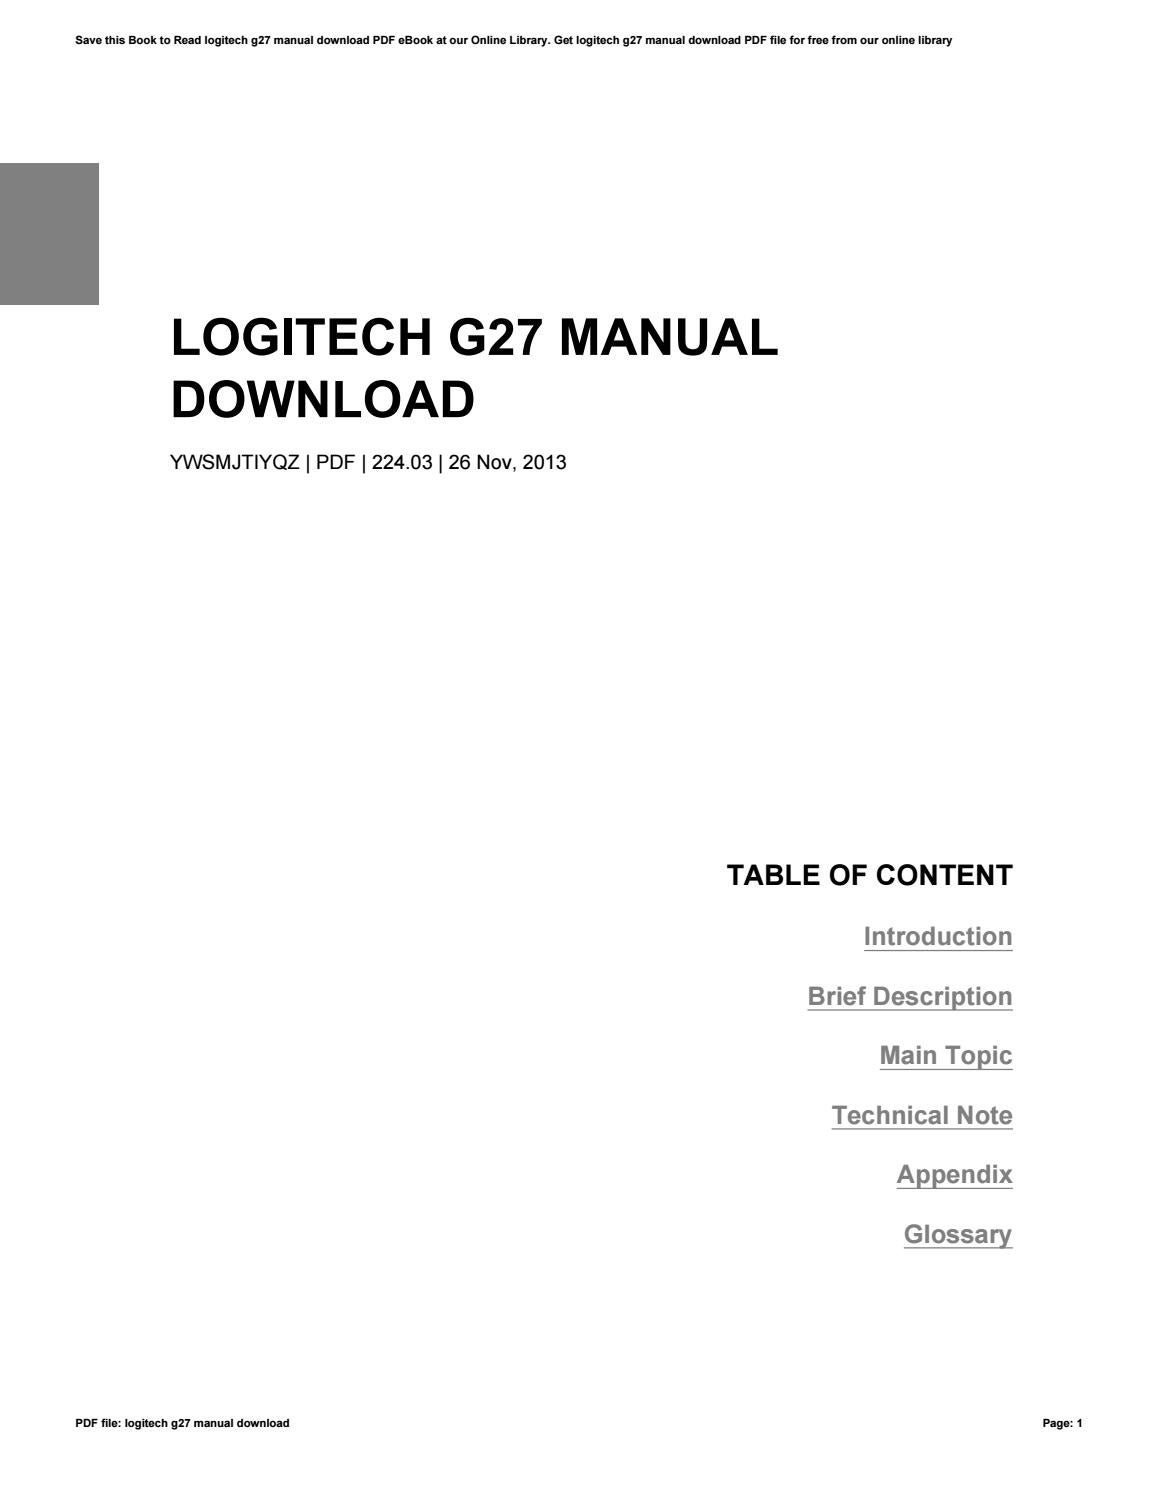 Logitech manuals download ebook array logitech g27 manual download by rochelleperry3175 issuu rh issuu fandeluxe Images